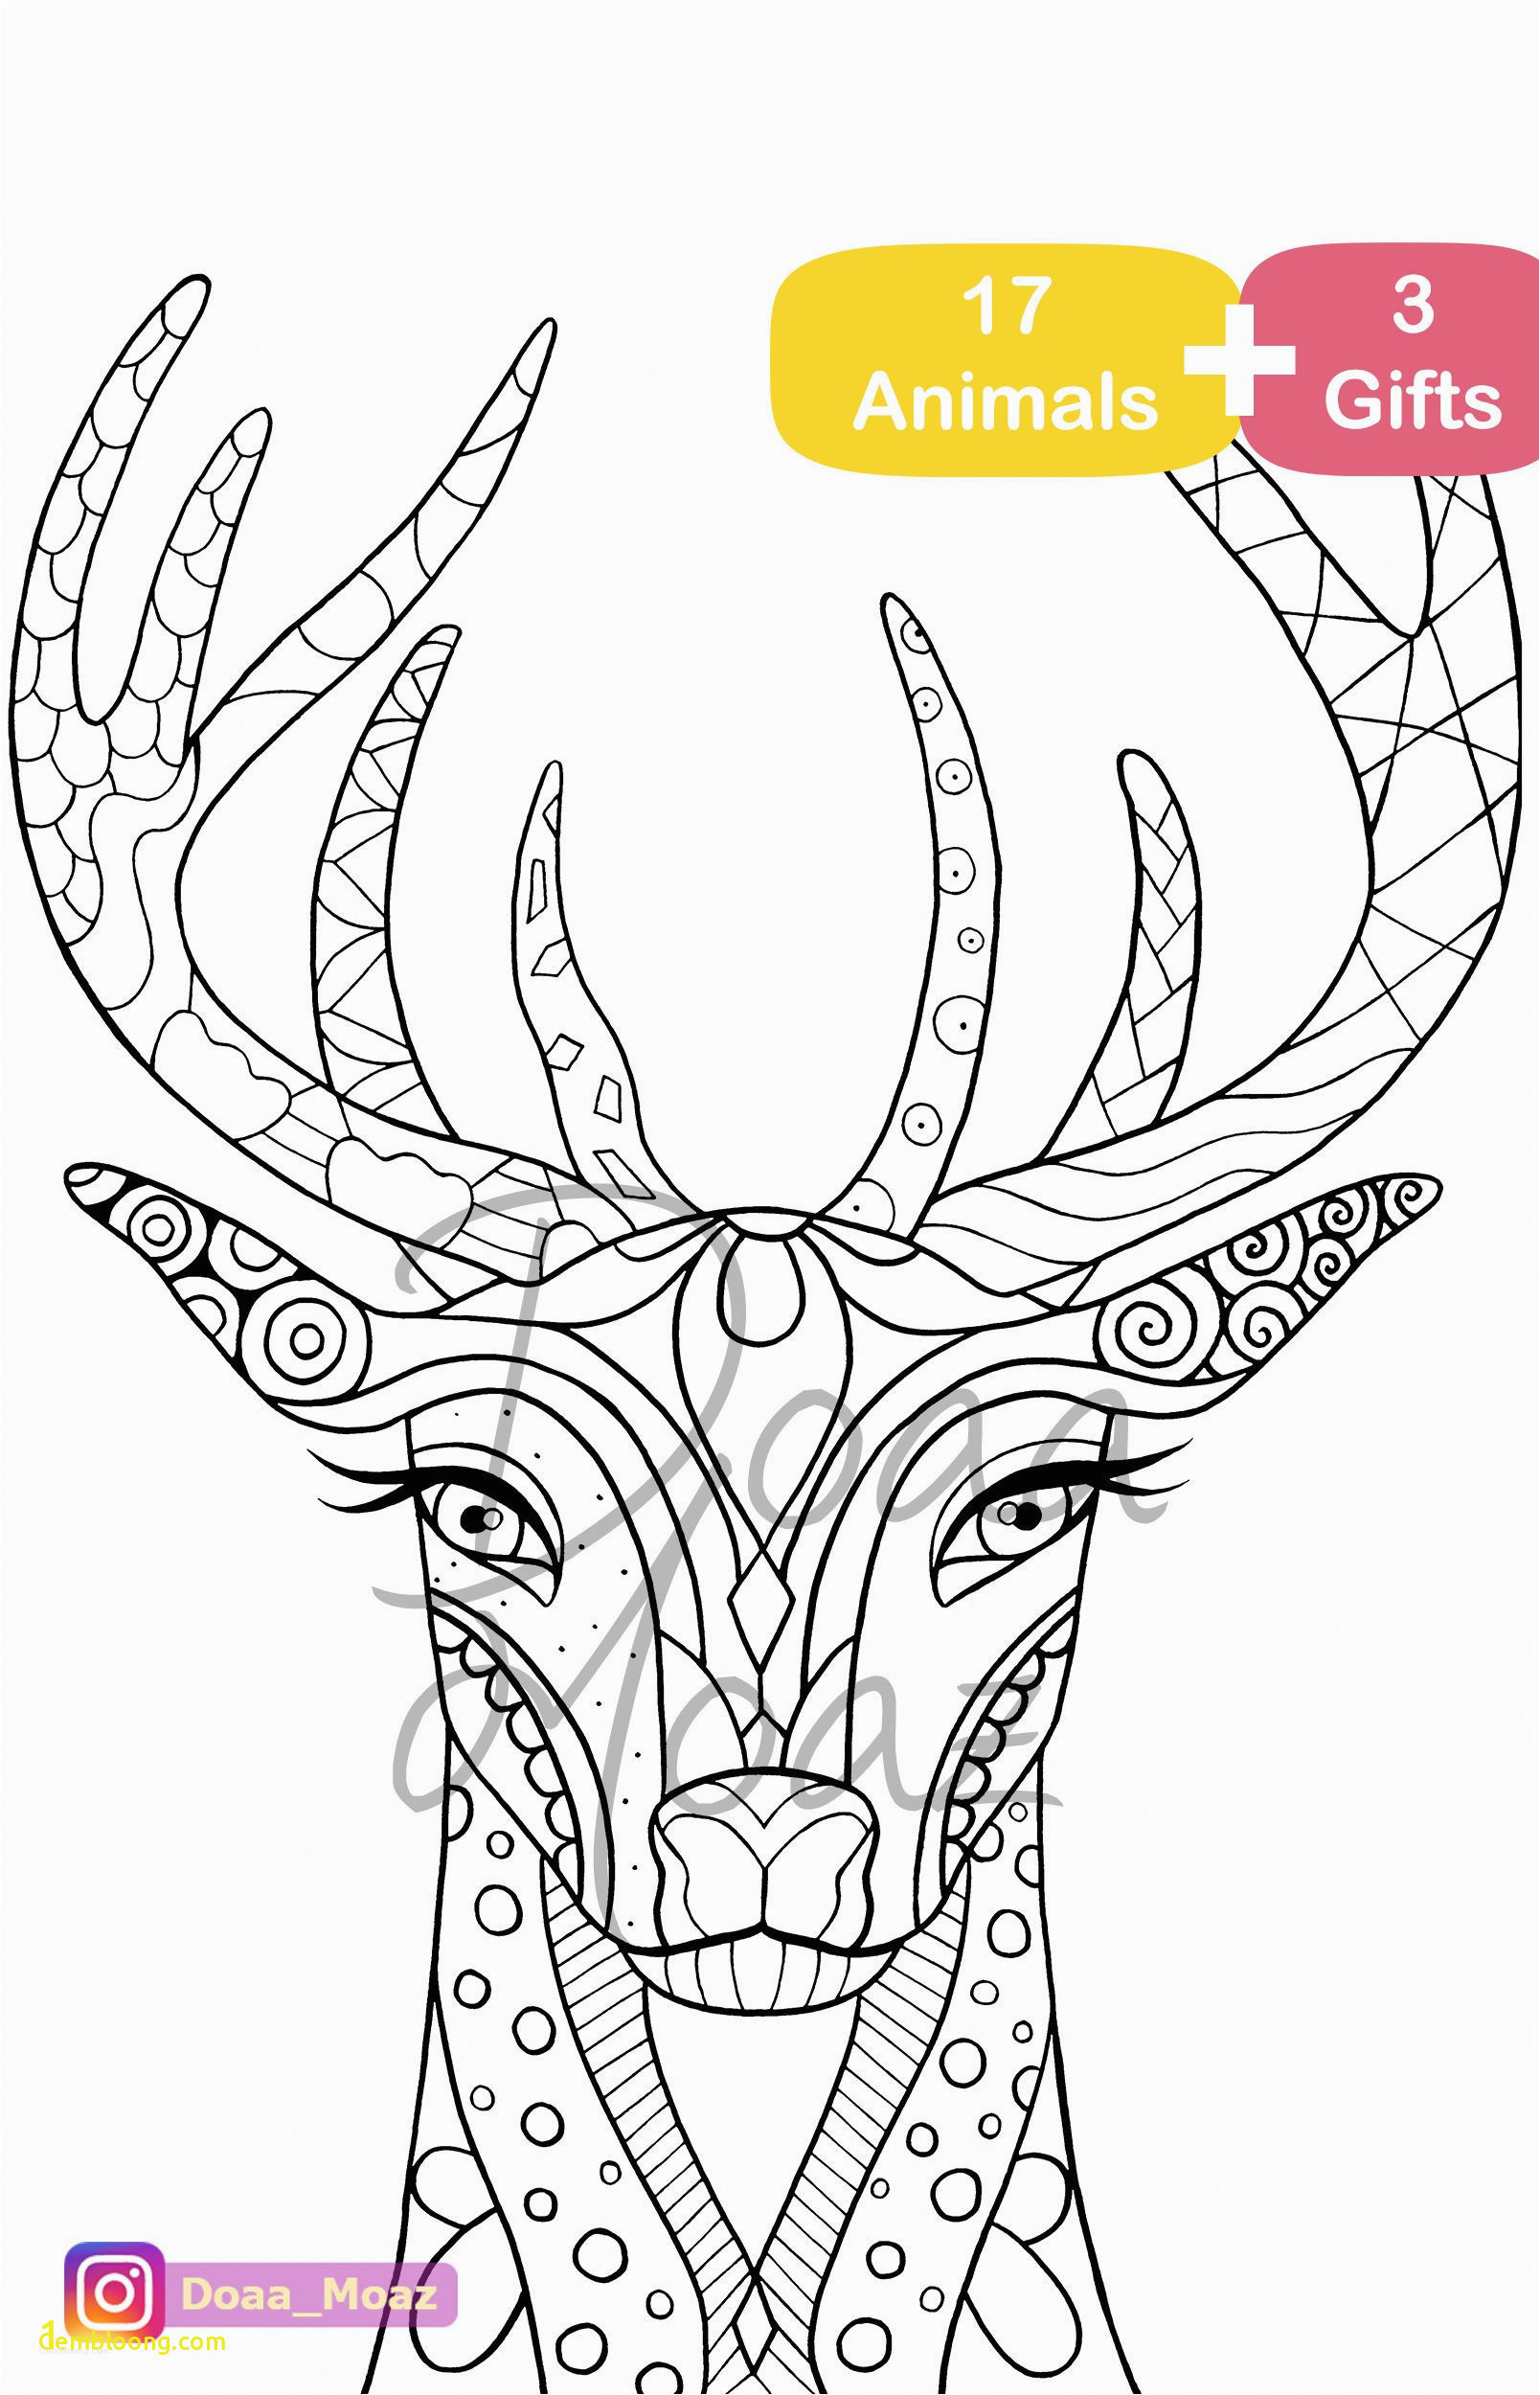 Coloring Pages for Occupational therapy | divyajanani.org